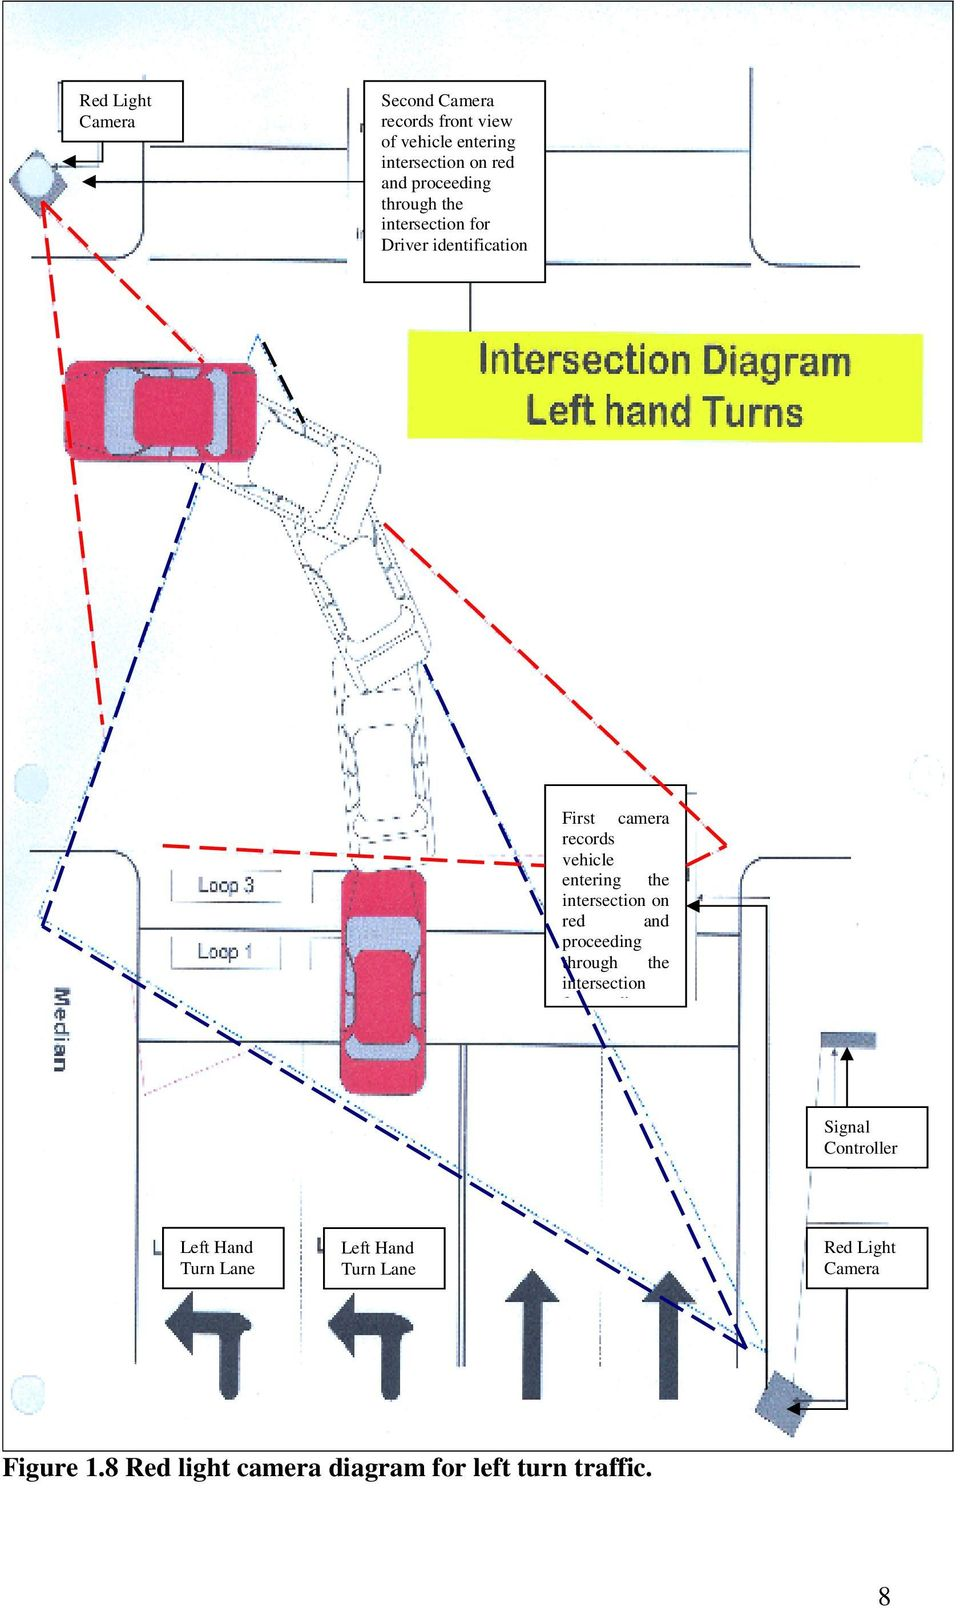 the intersection on red and proceeding through the intersection f li Signal Controller Left Hand